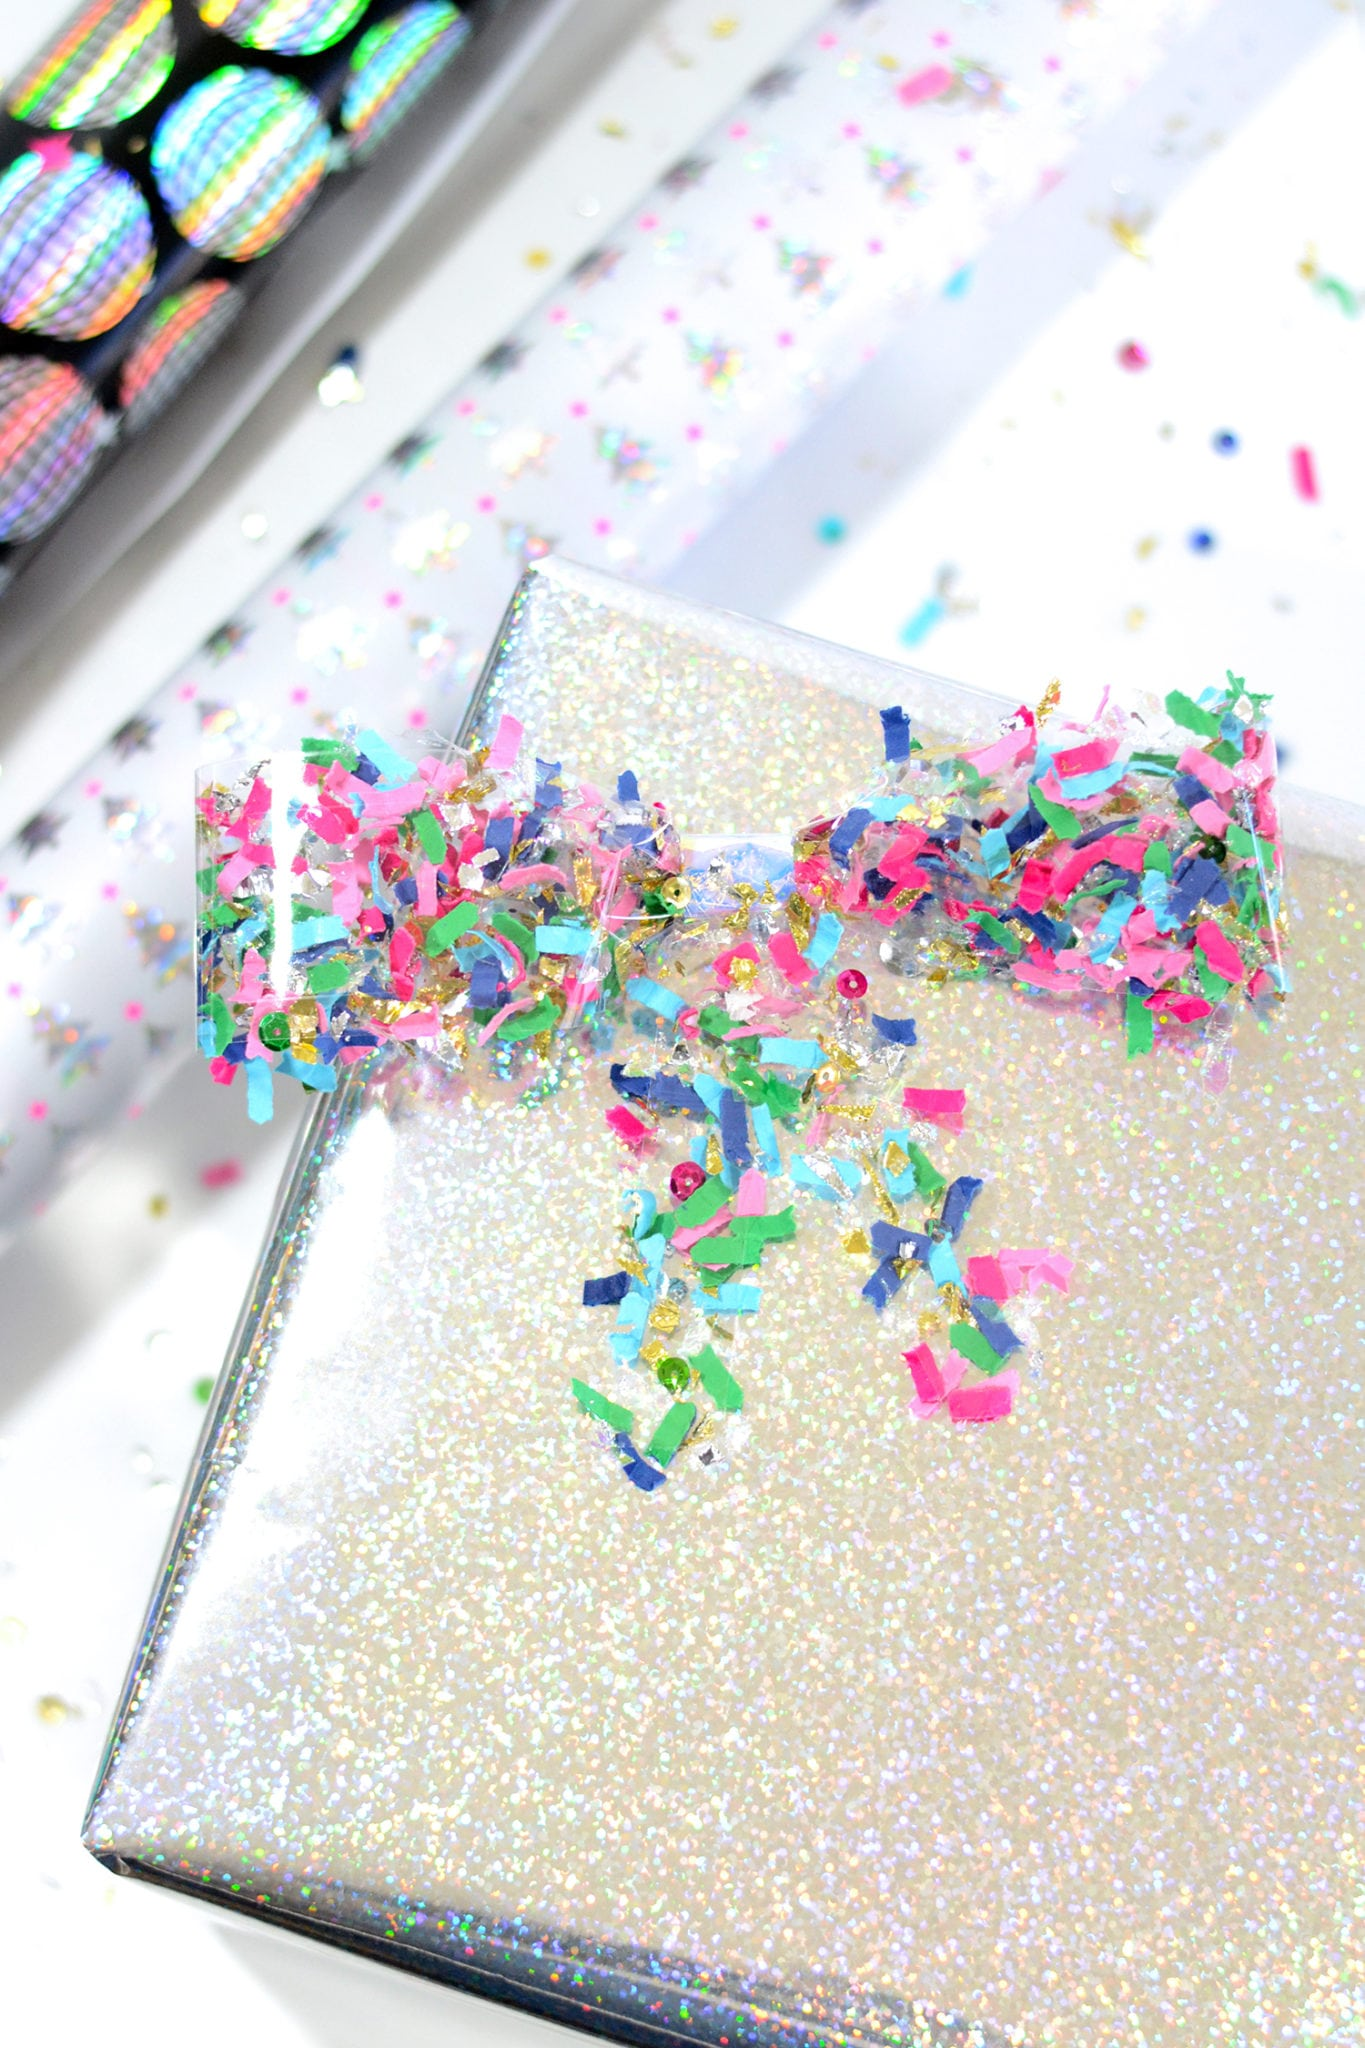 Make a simple confetti bow using clear tape!